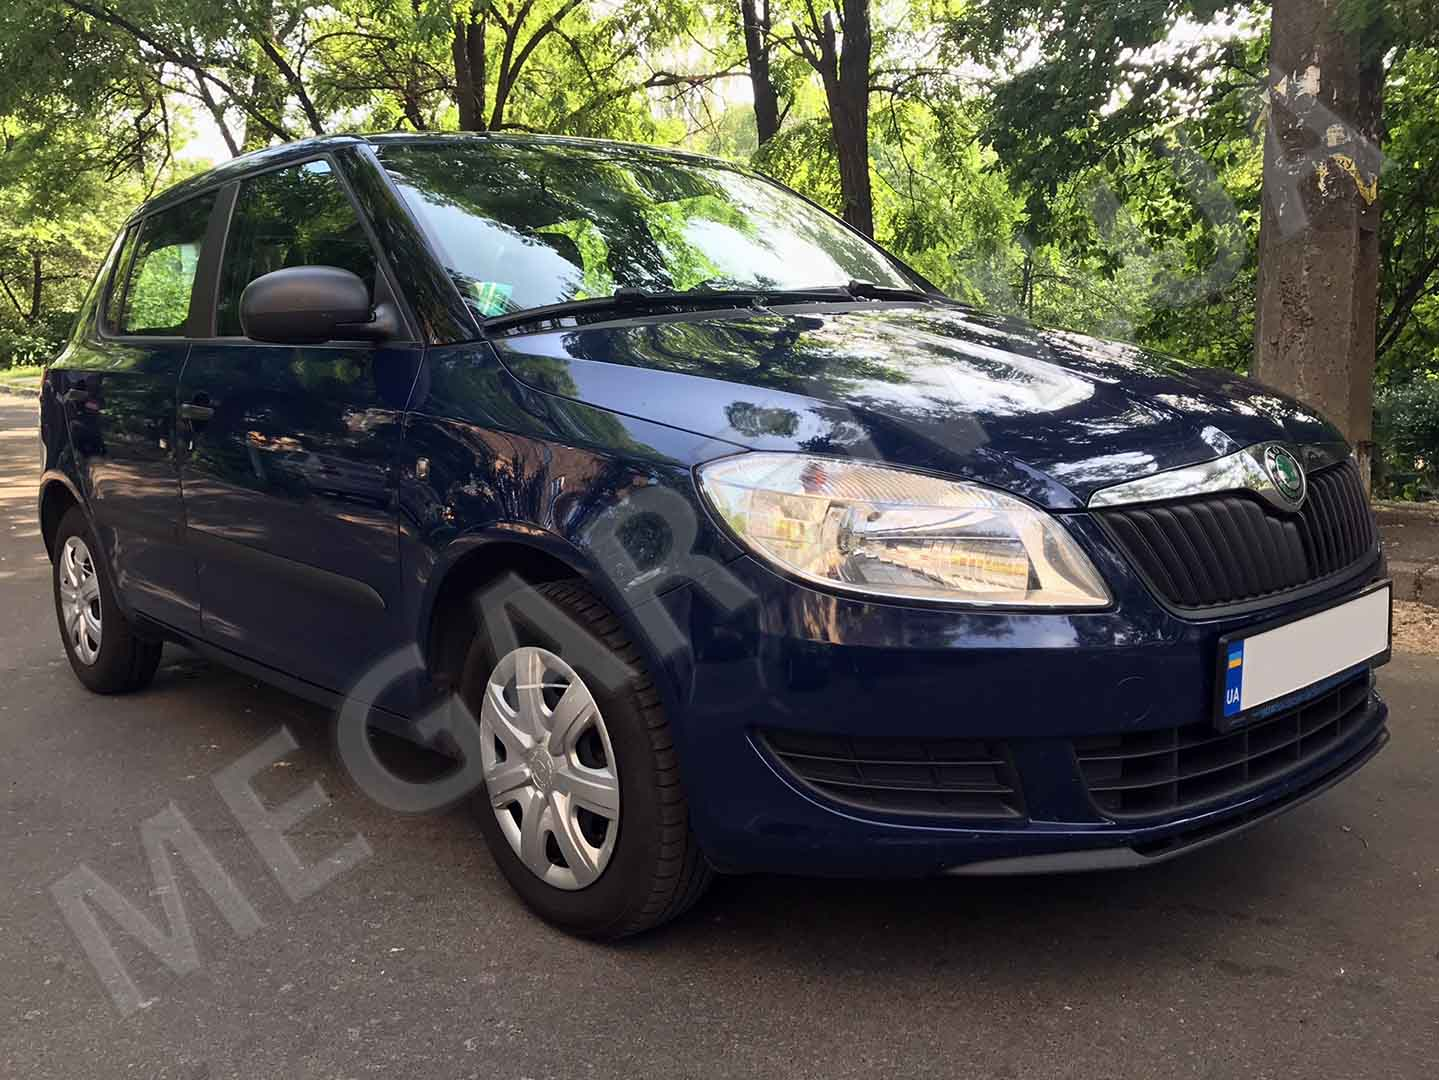 Rent a car Skoda Fabia 2014 in Kyiv - Megarent